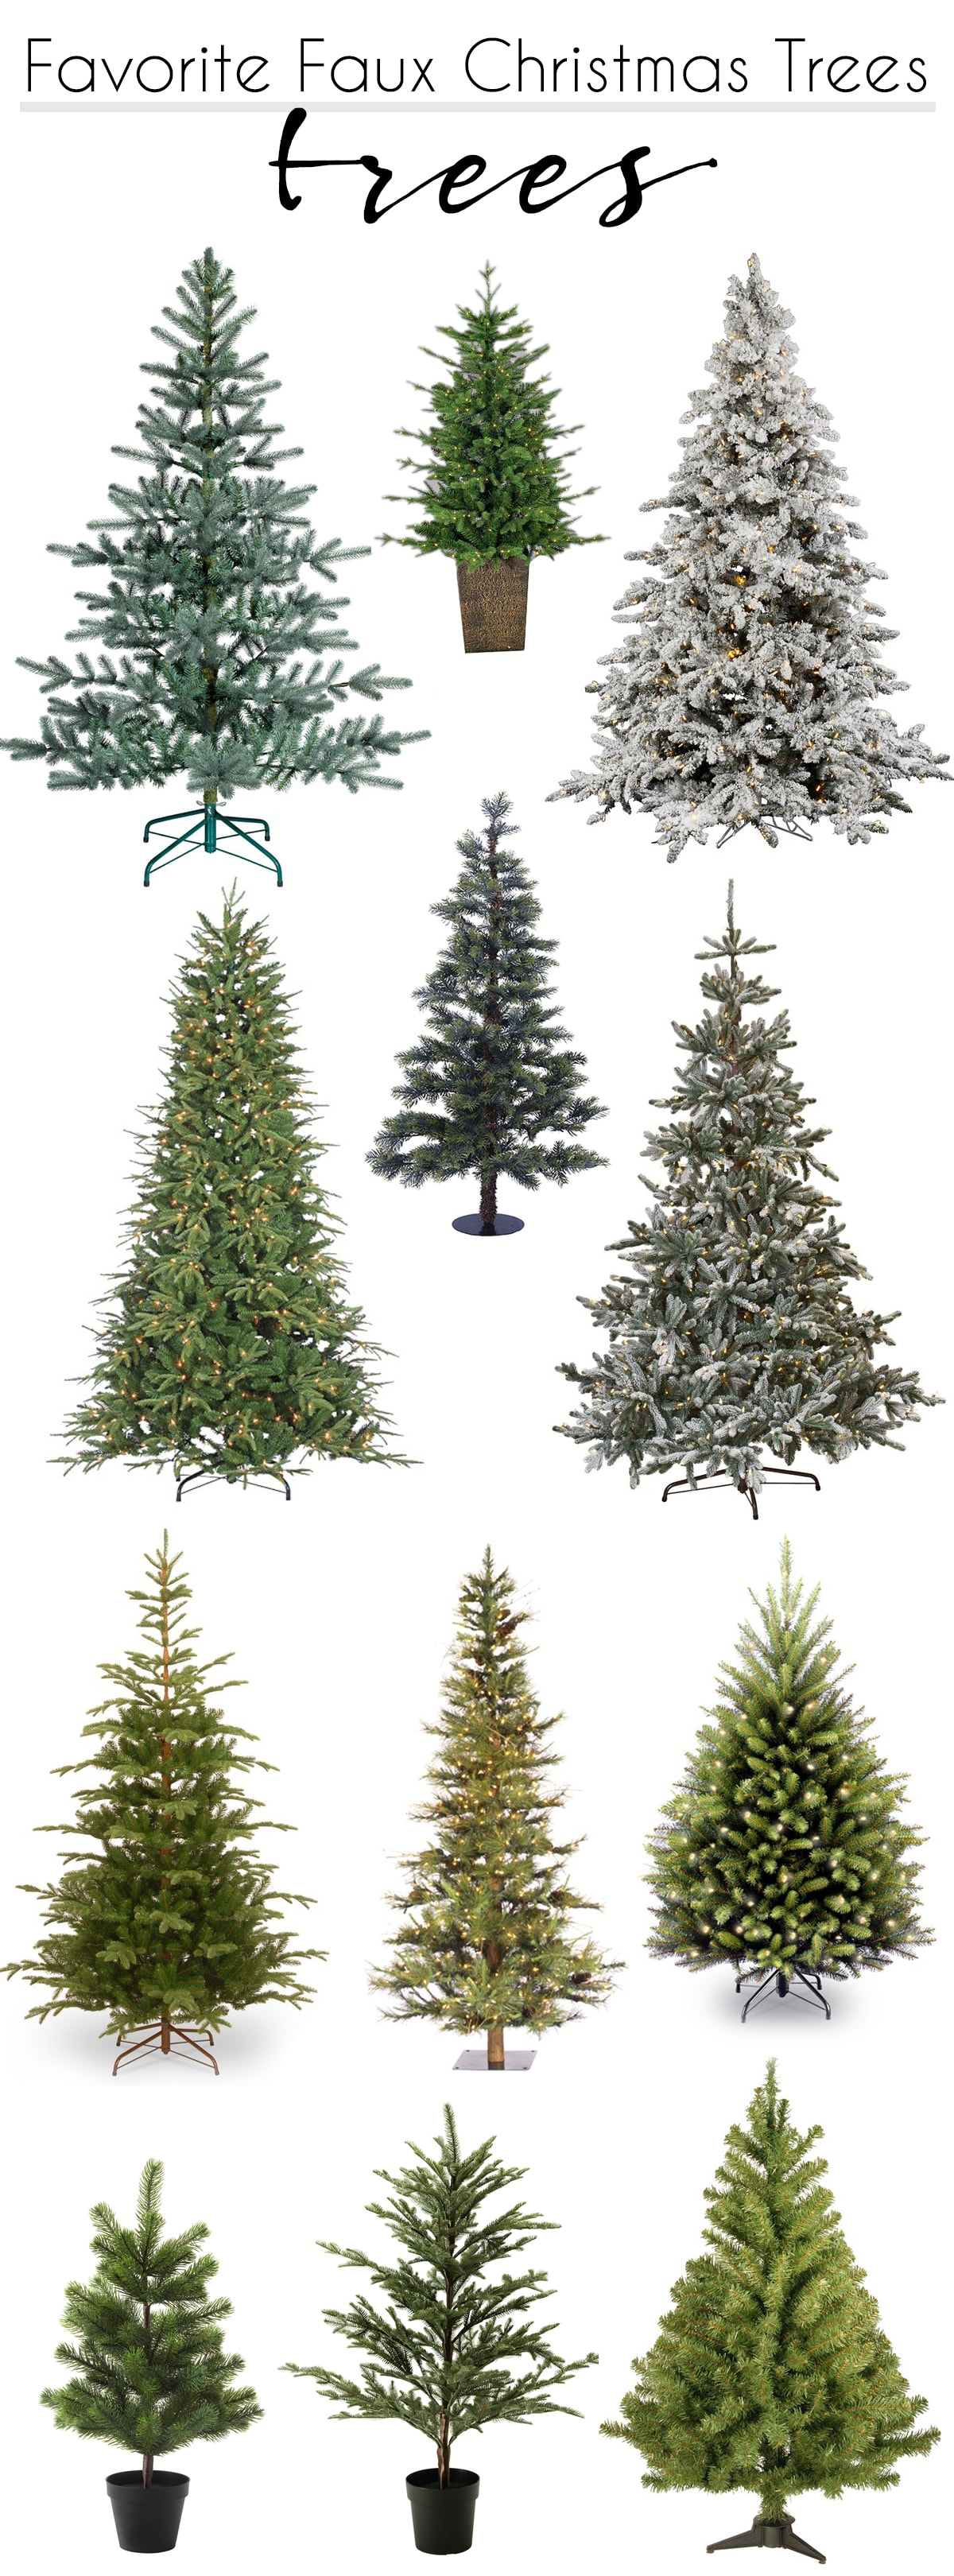 my favorite faux Christmas Trees | I own 3, 10 and 12 and love them